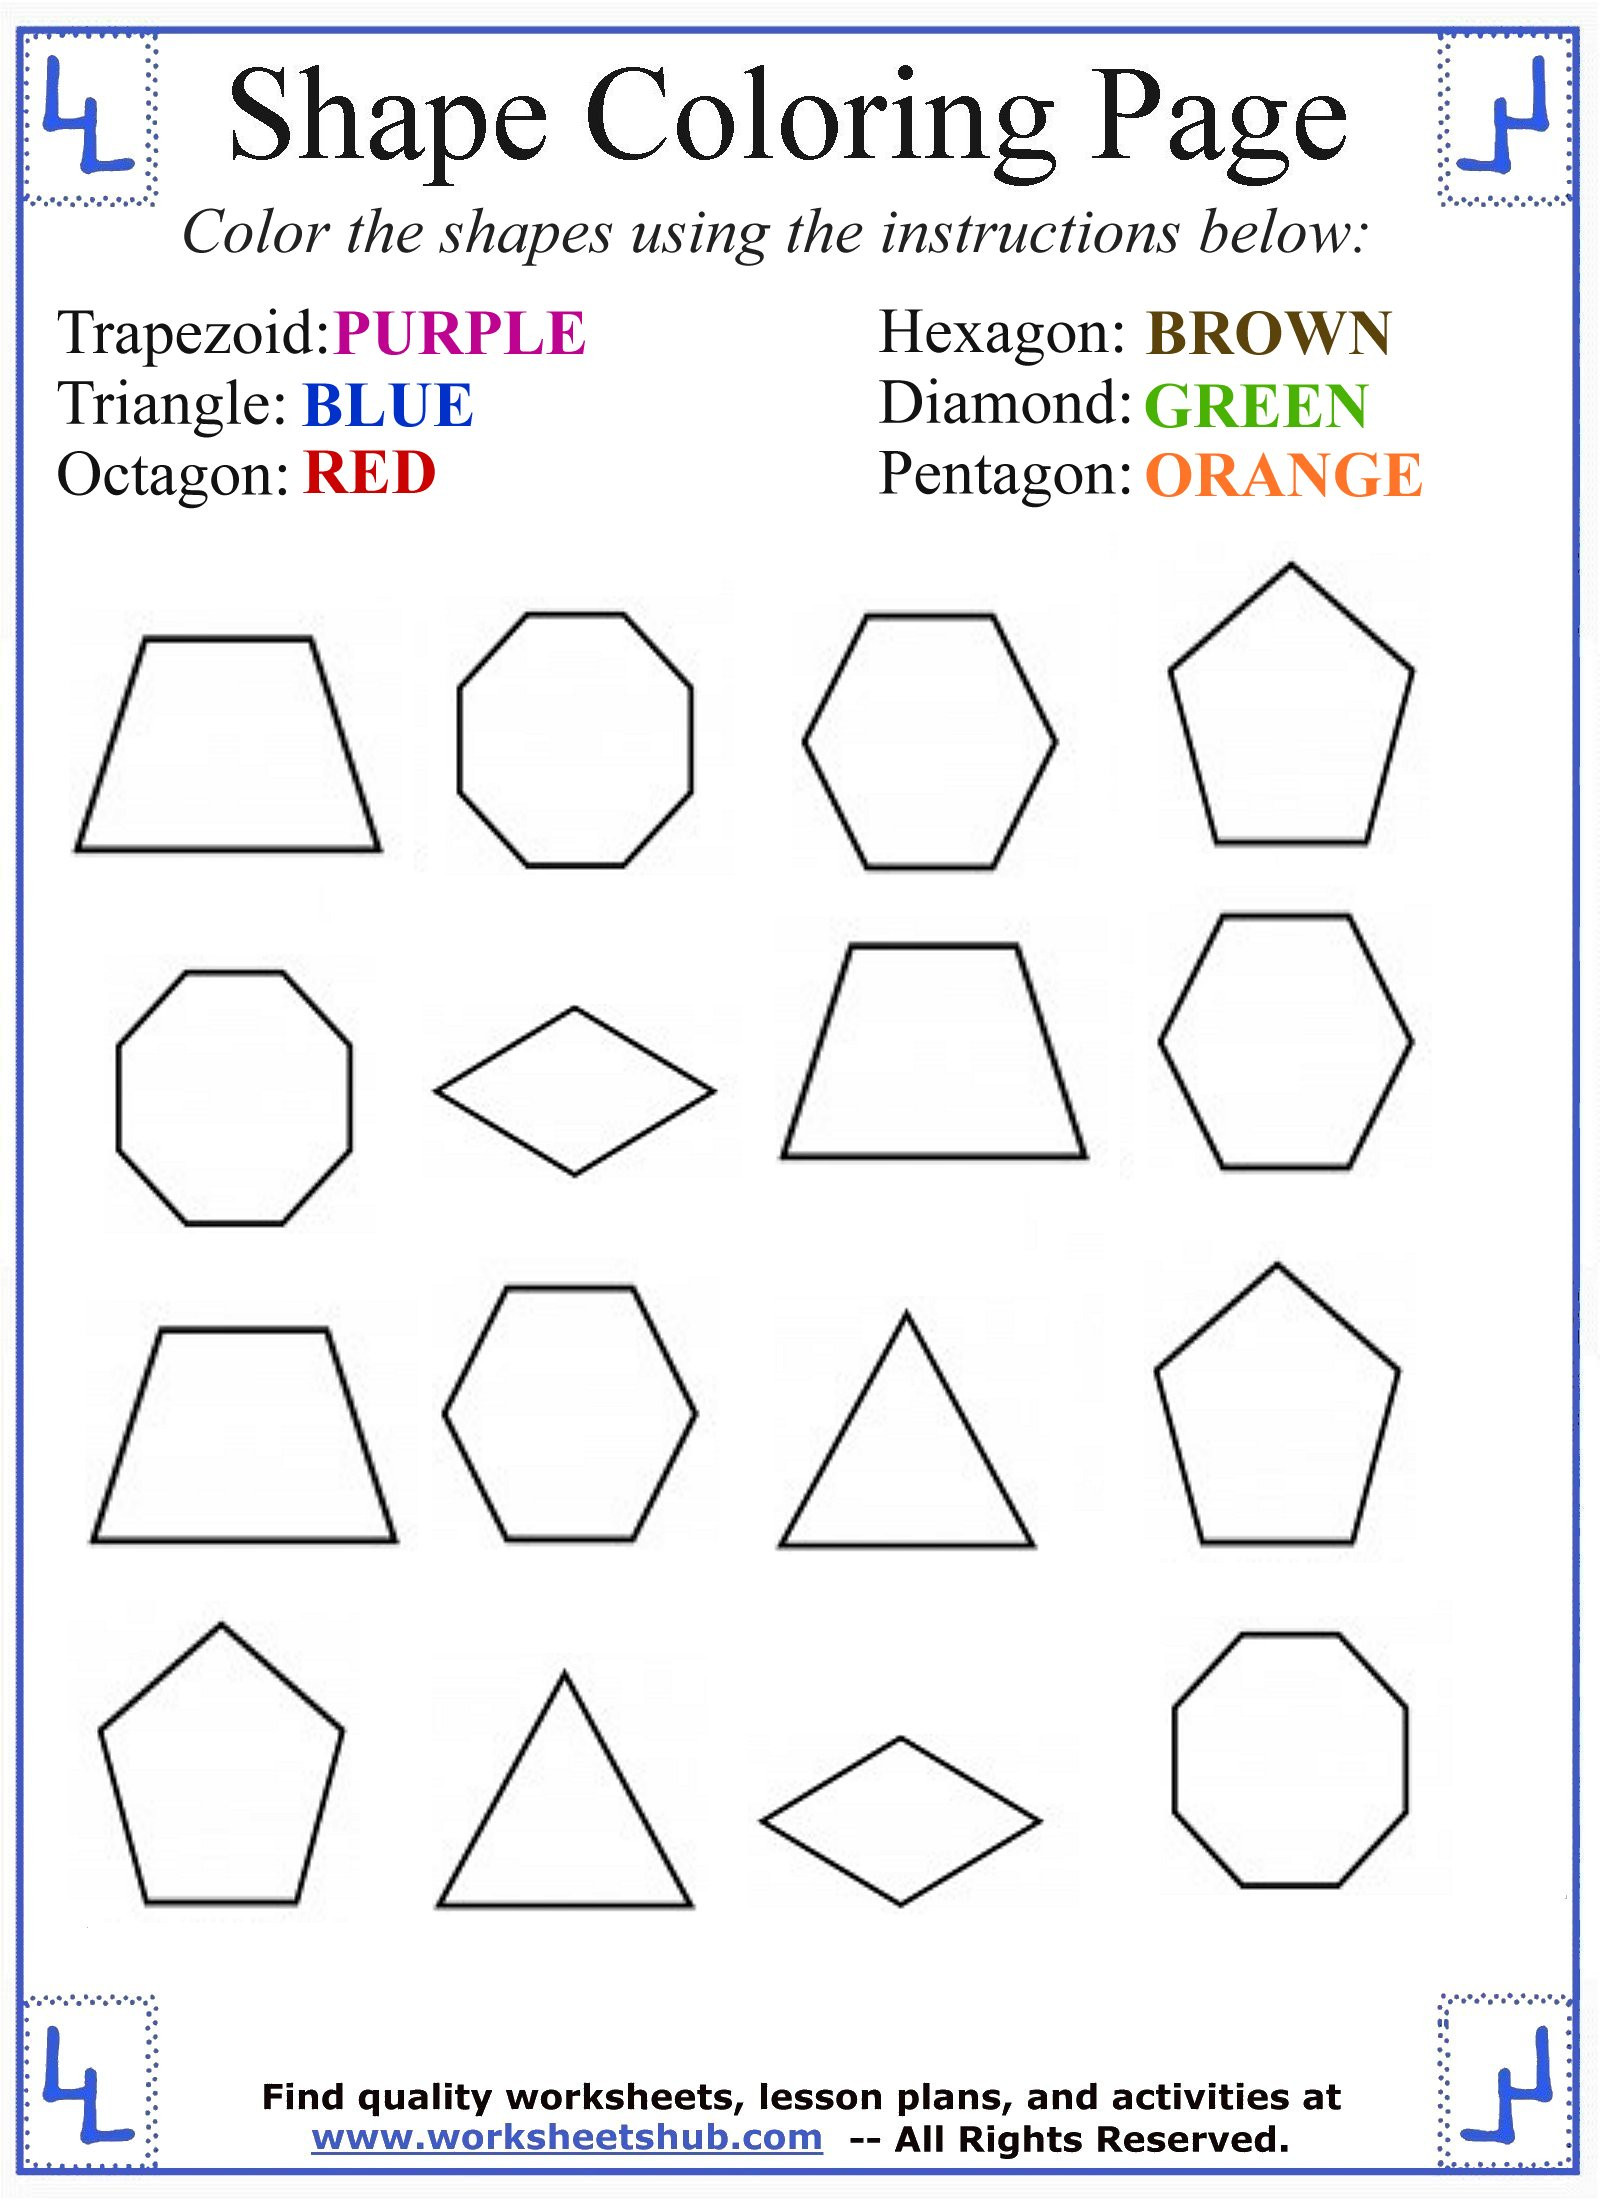 Shapes Worksheets 1st Grade Shape Coloring Basic Shapes Business Math Ebook Easy Games